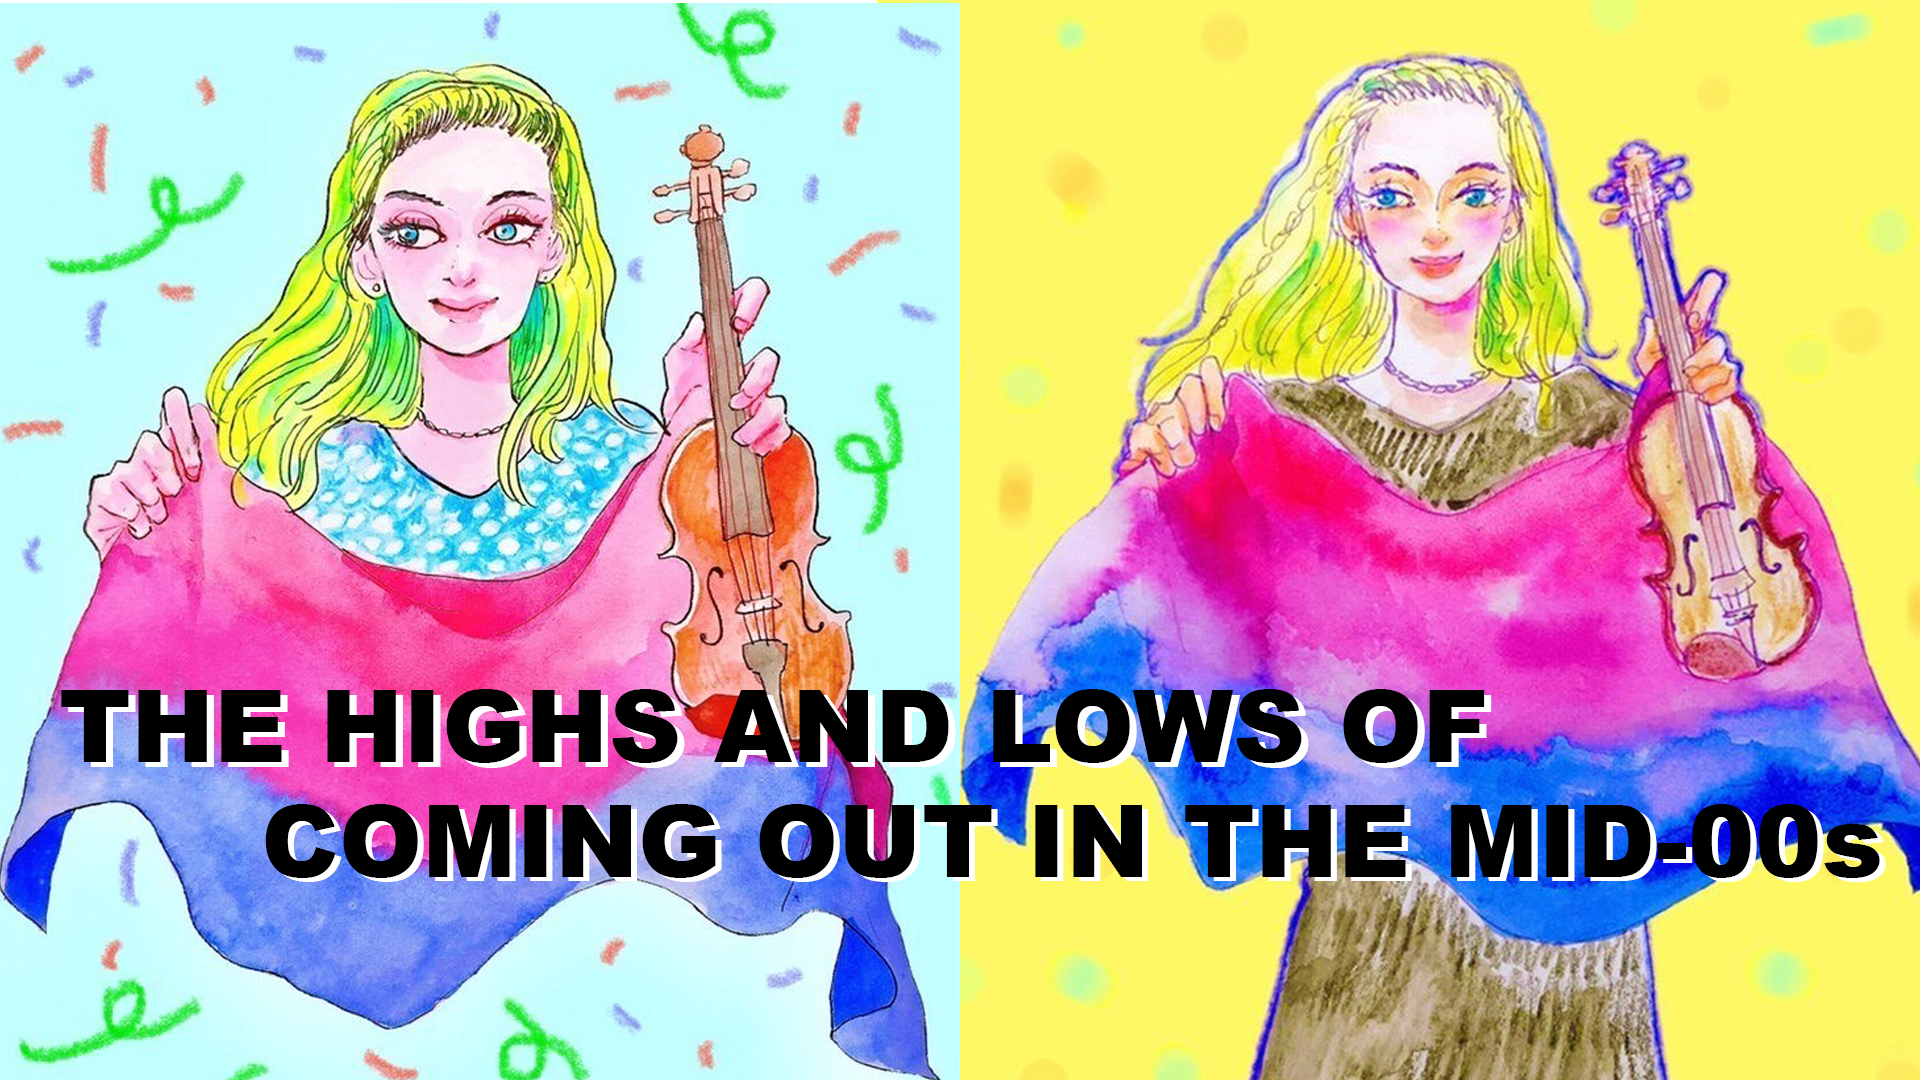 The Highs and Lows of Coming out in the Mid-00s